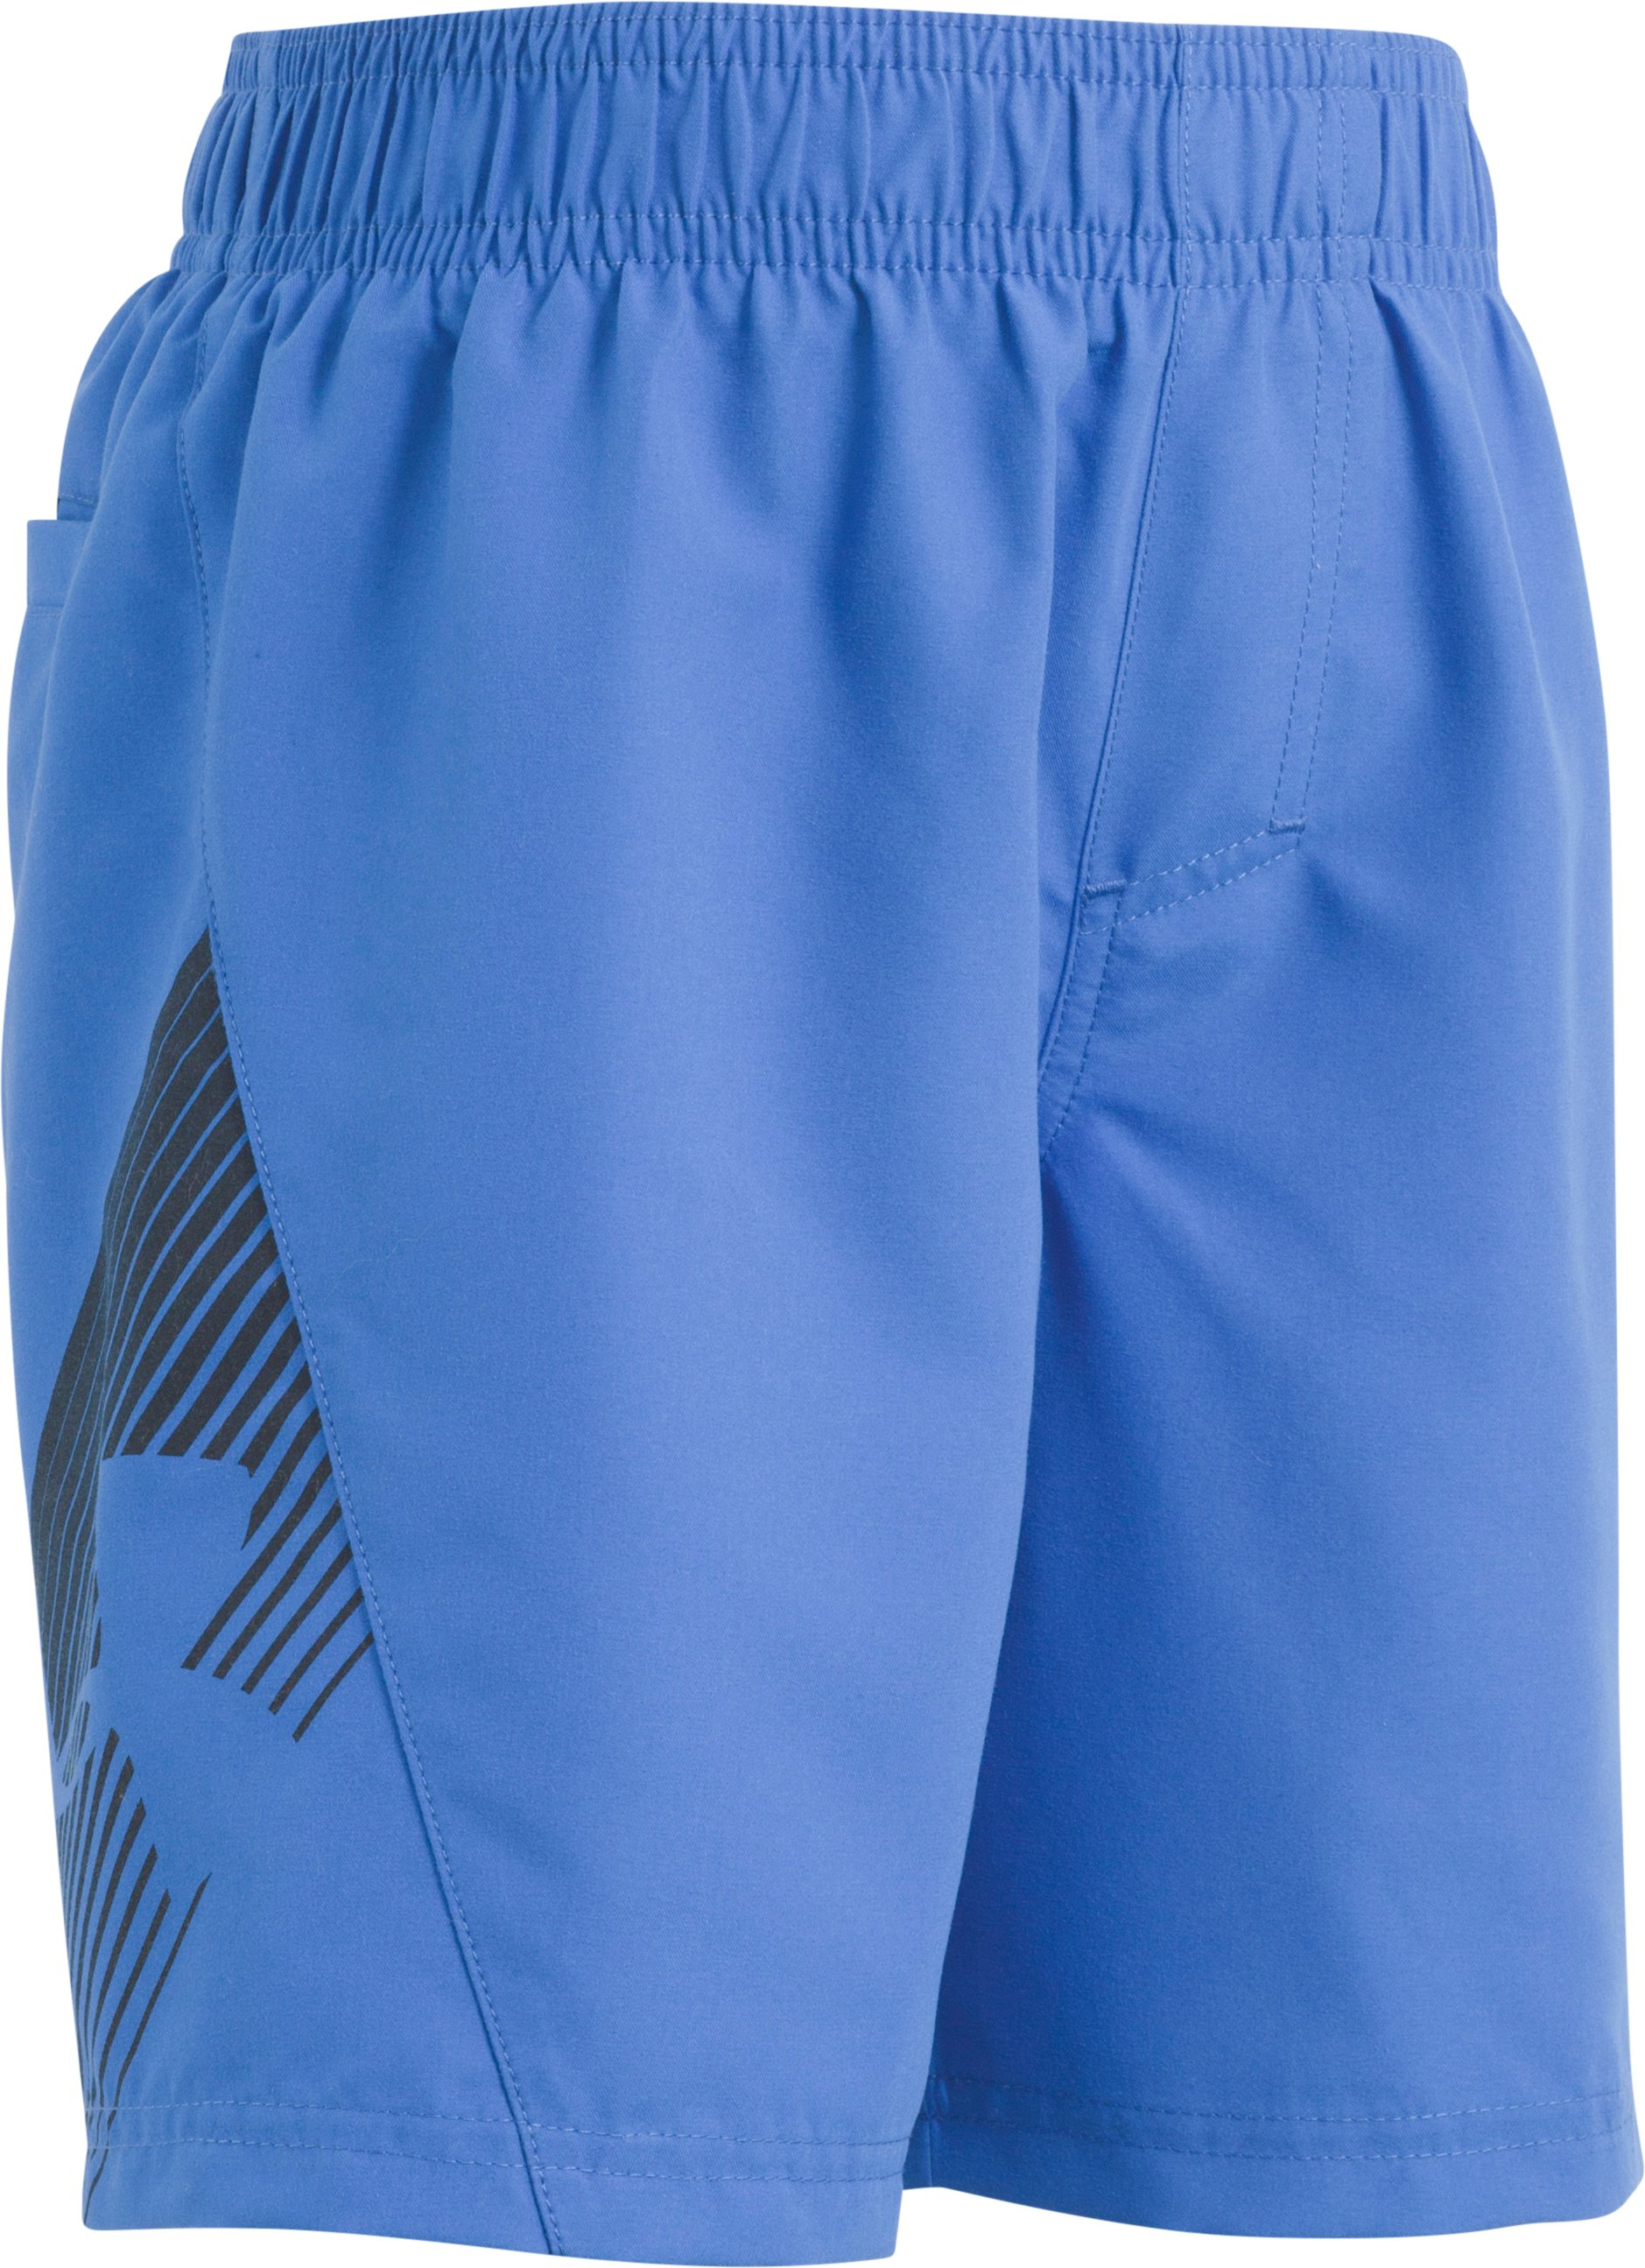 Boys' Pre-School UA Entry Solid Boardshorts, ULTRA BLUE